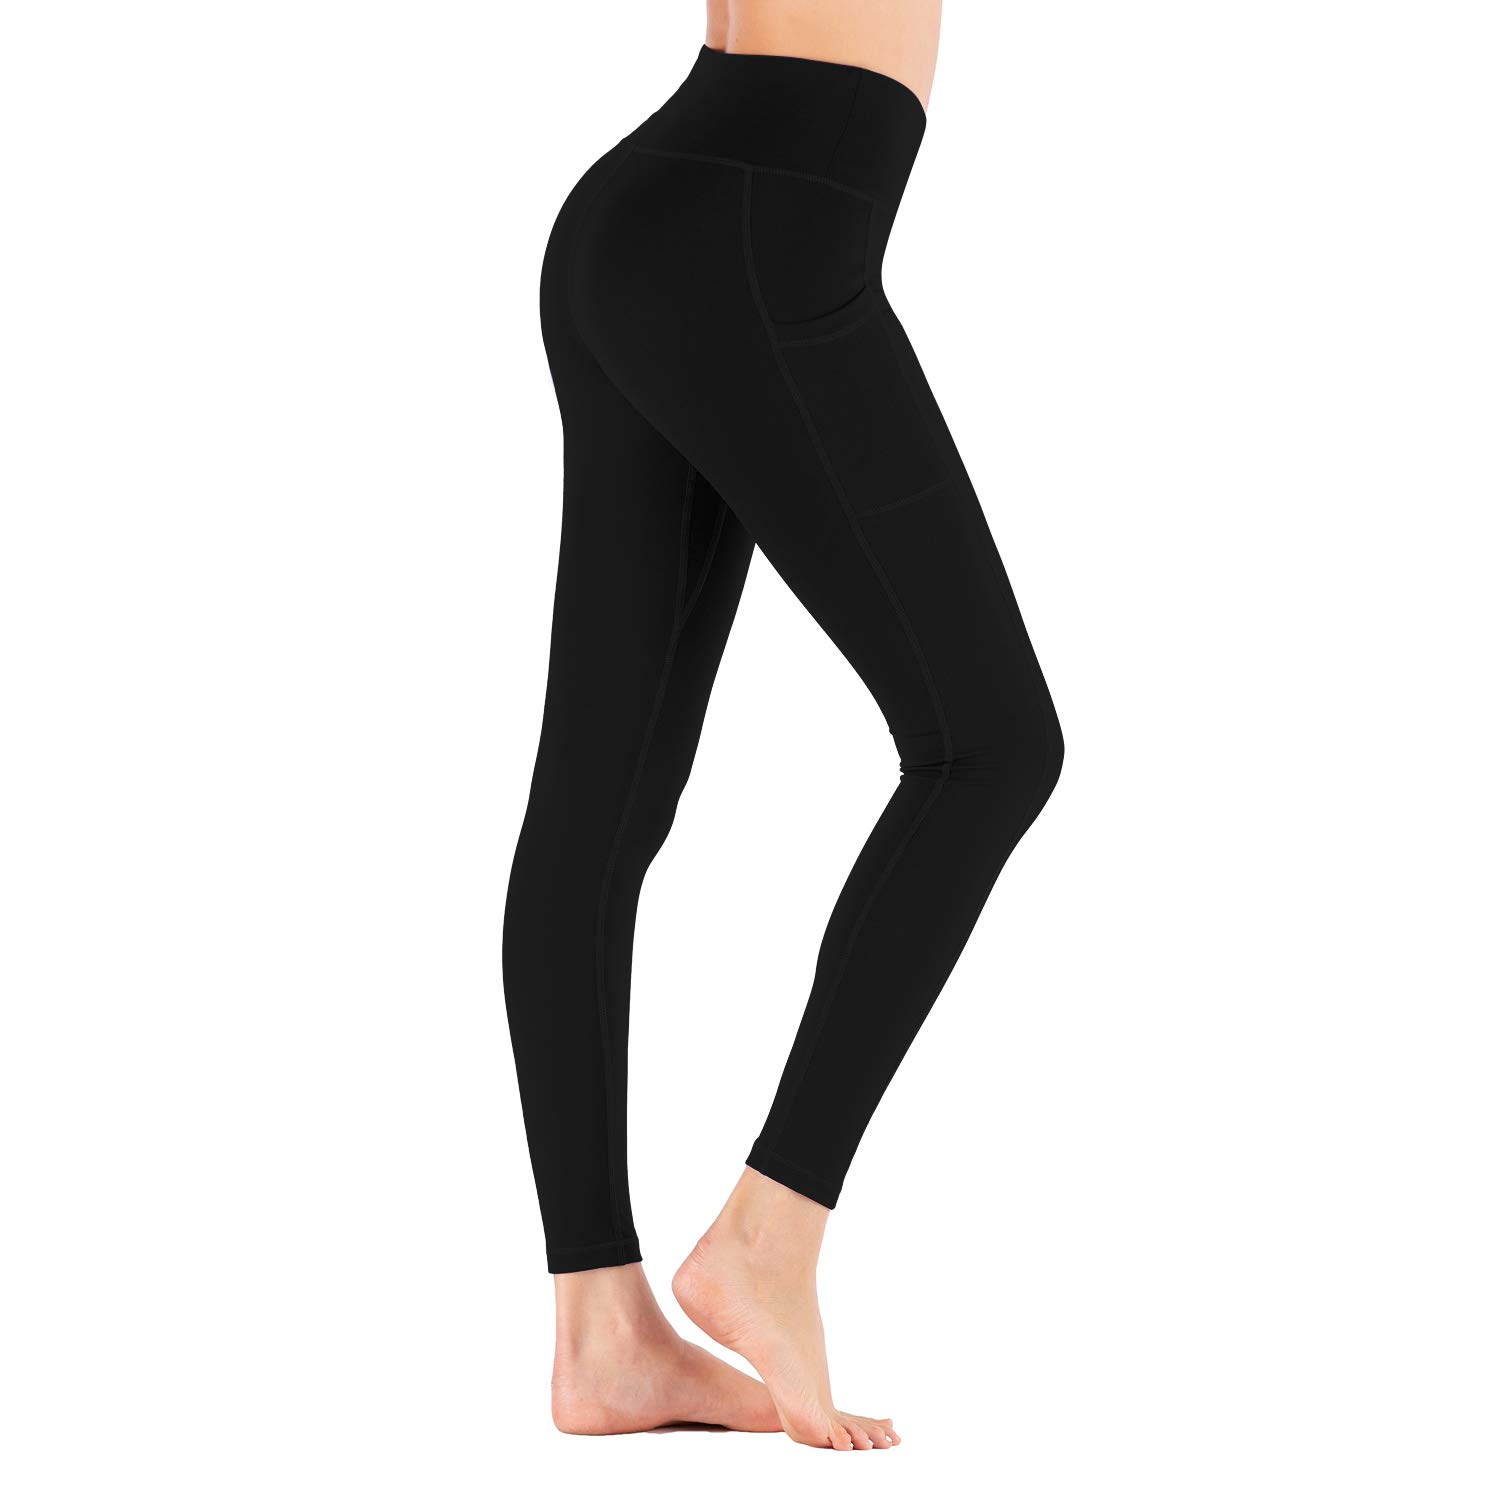 Aro Lora Womens Yoga Leggings - High Waist Tummy Control Footless Workout Running Tights Pants with Pockets